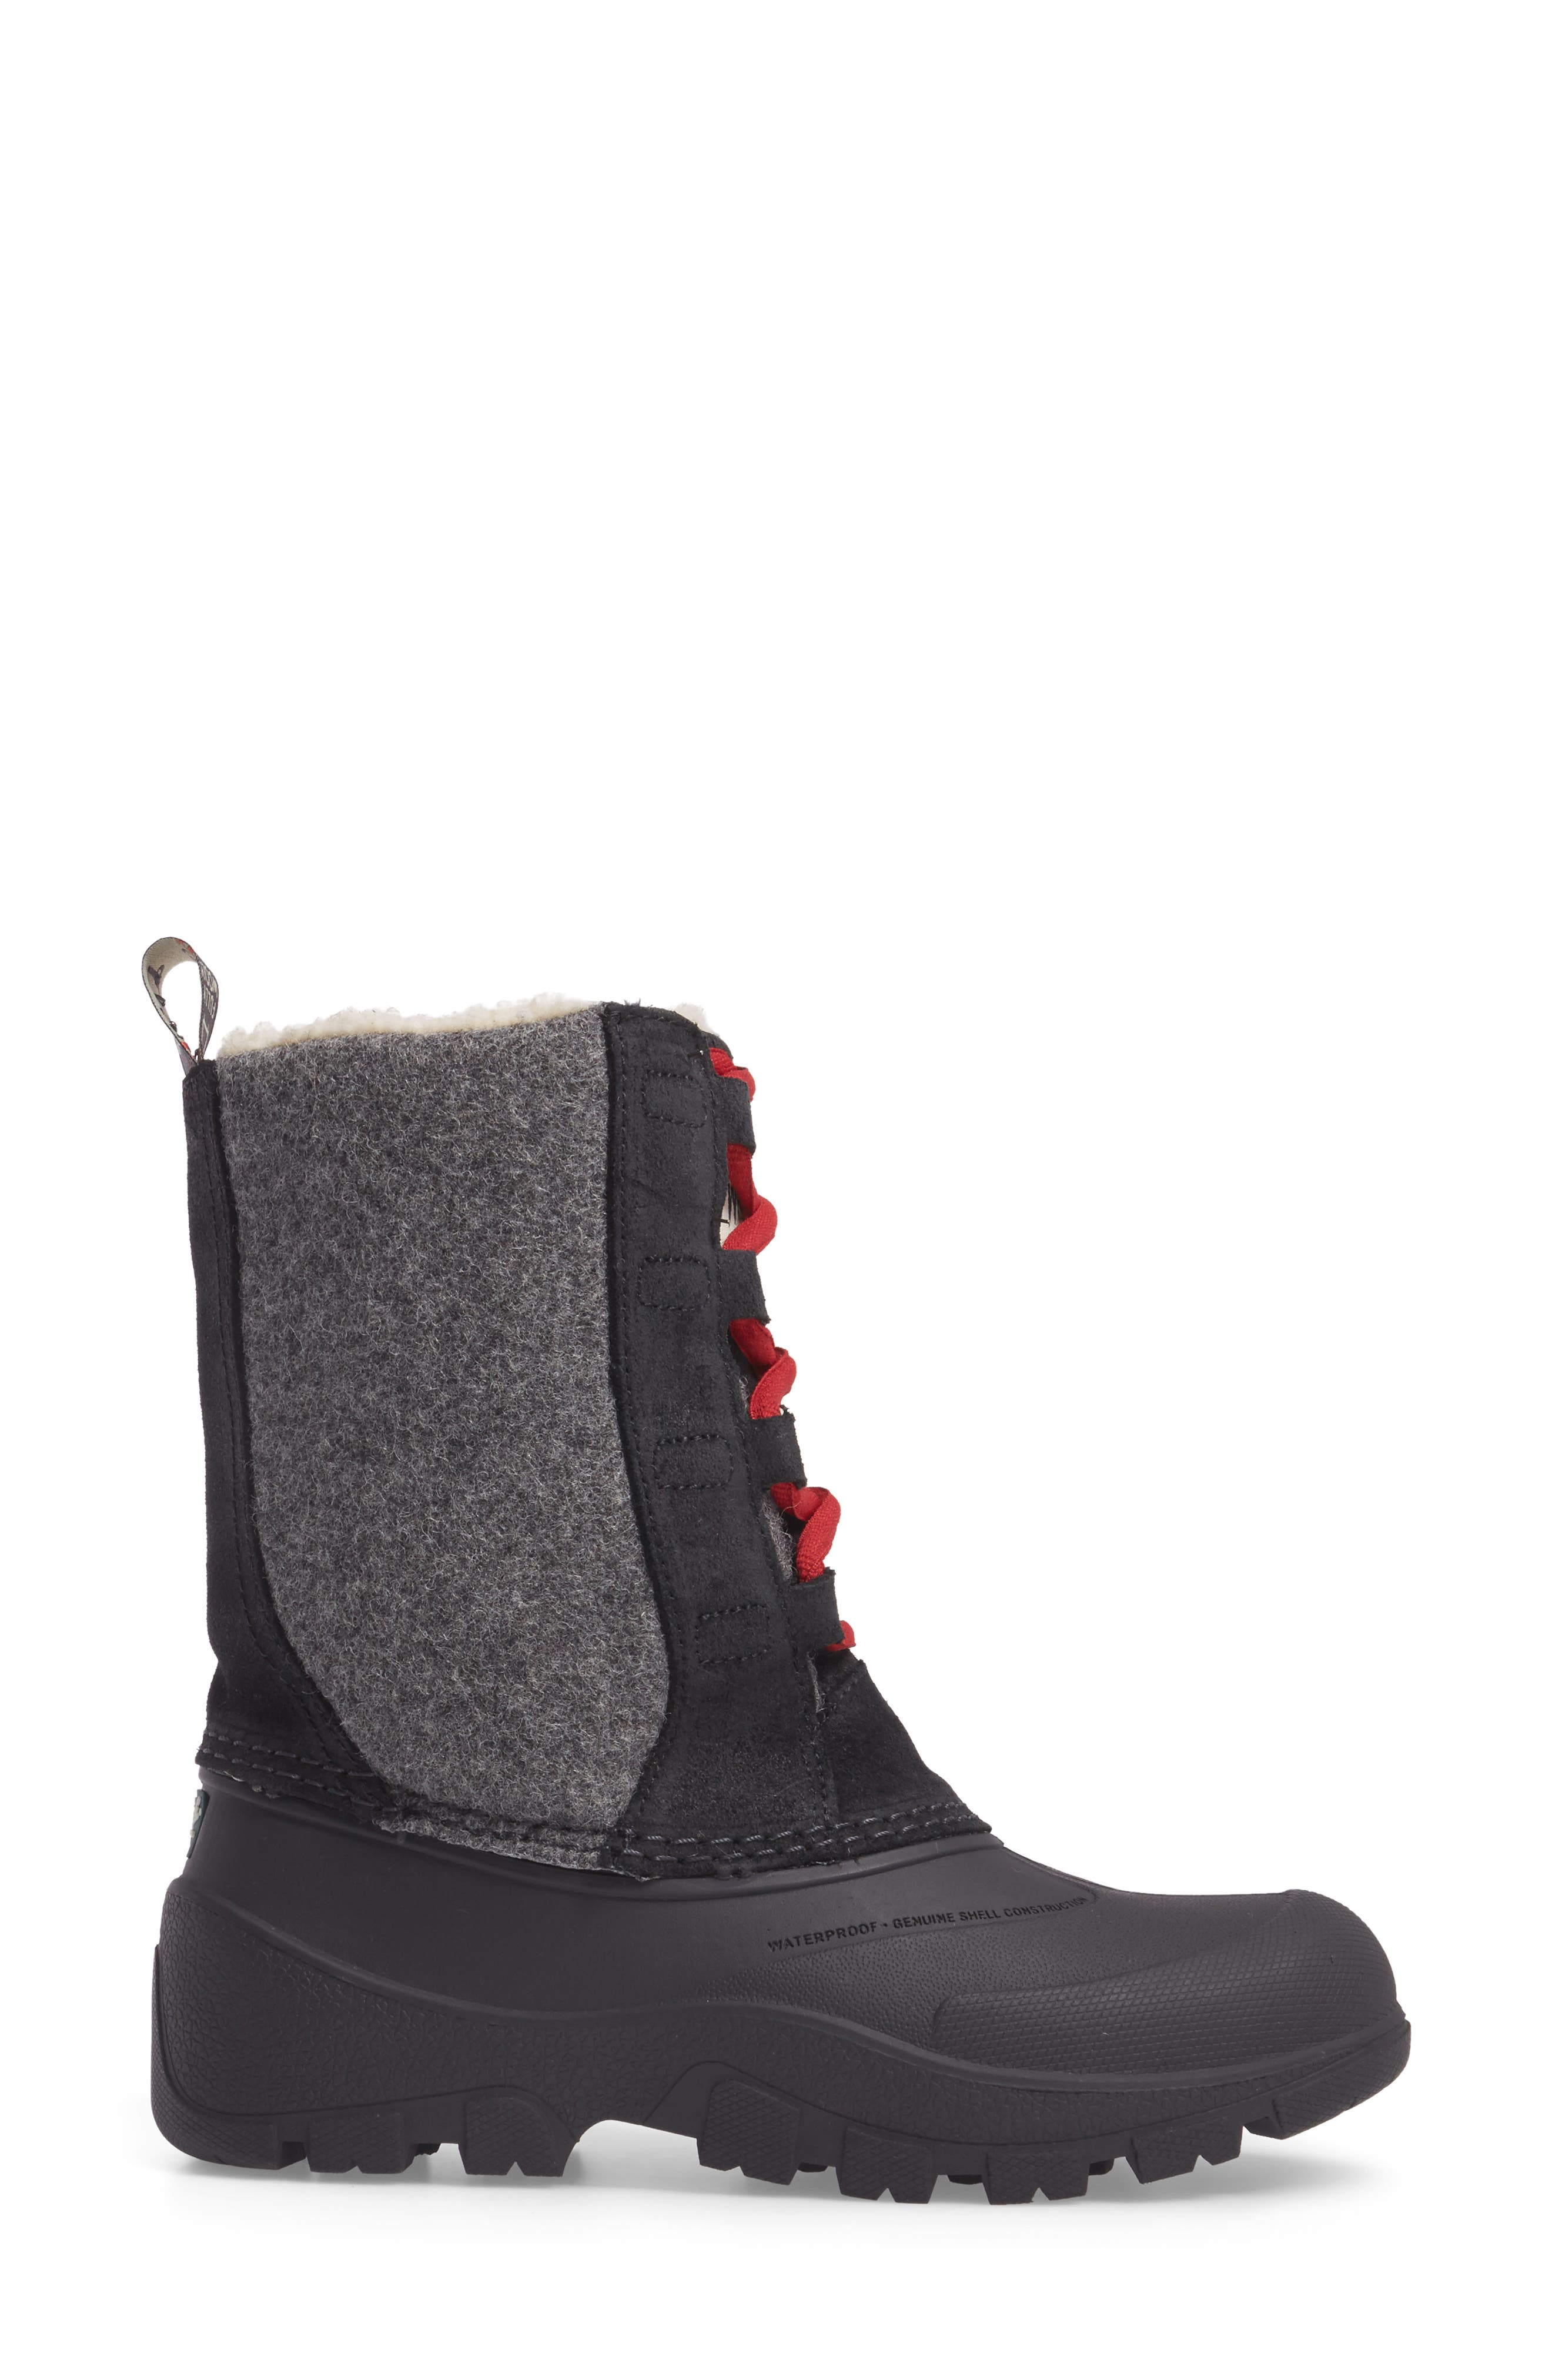 Fully Wooly Tundracat Waterproof Insulated Winter Boot,                             Alternate thumbnail 3, color,                             Black Leather